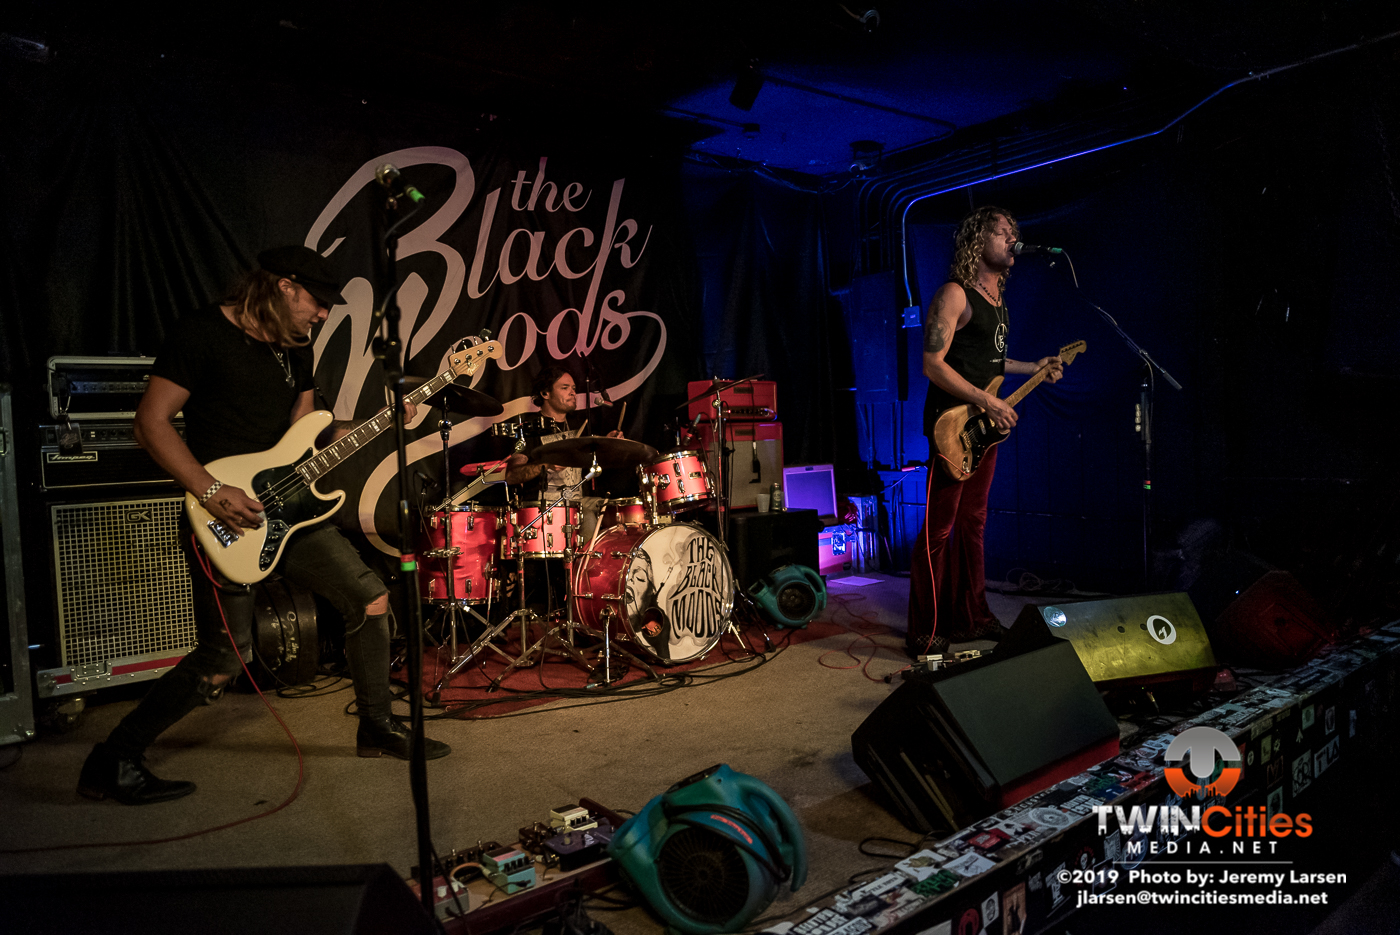 20190718-The-Black-Moods-The-Whats-Up-Lounge-7